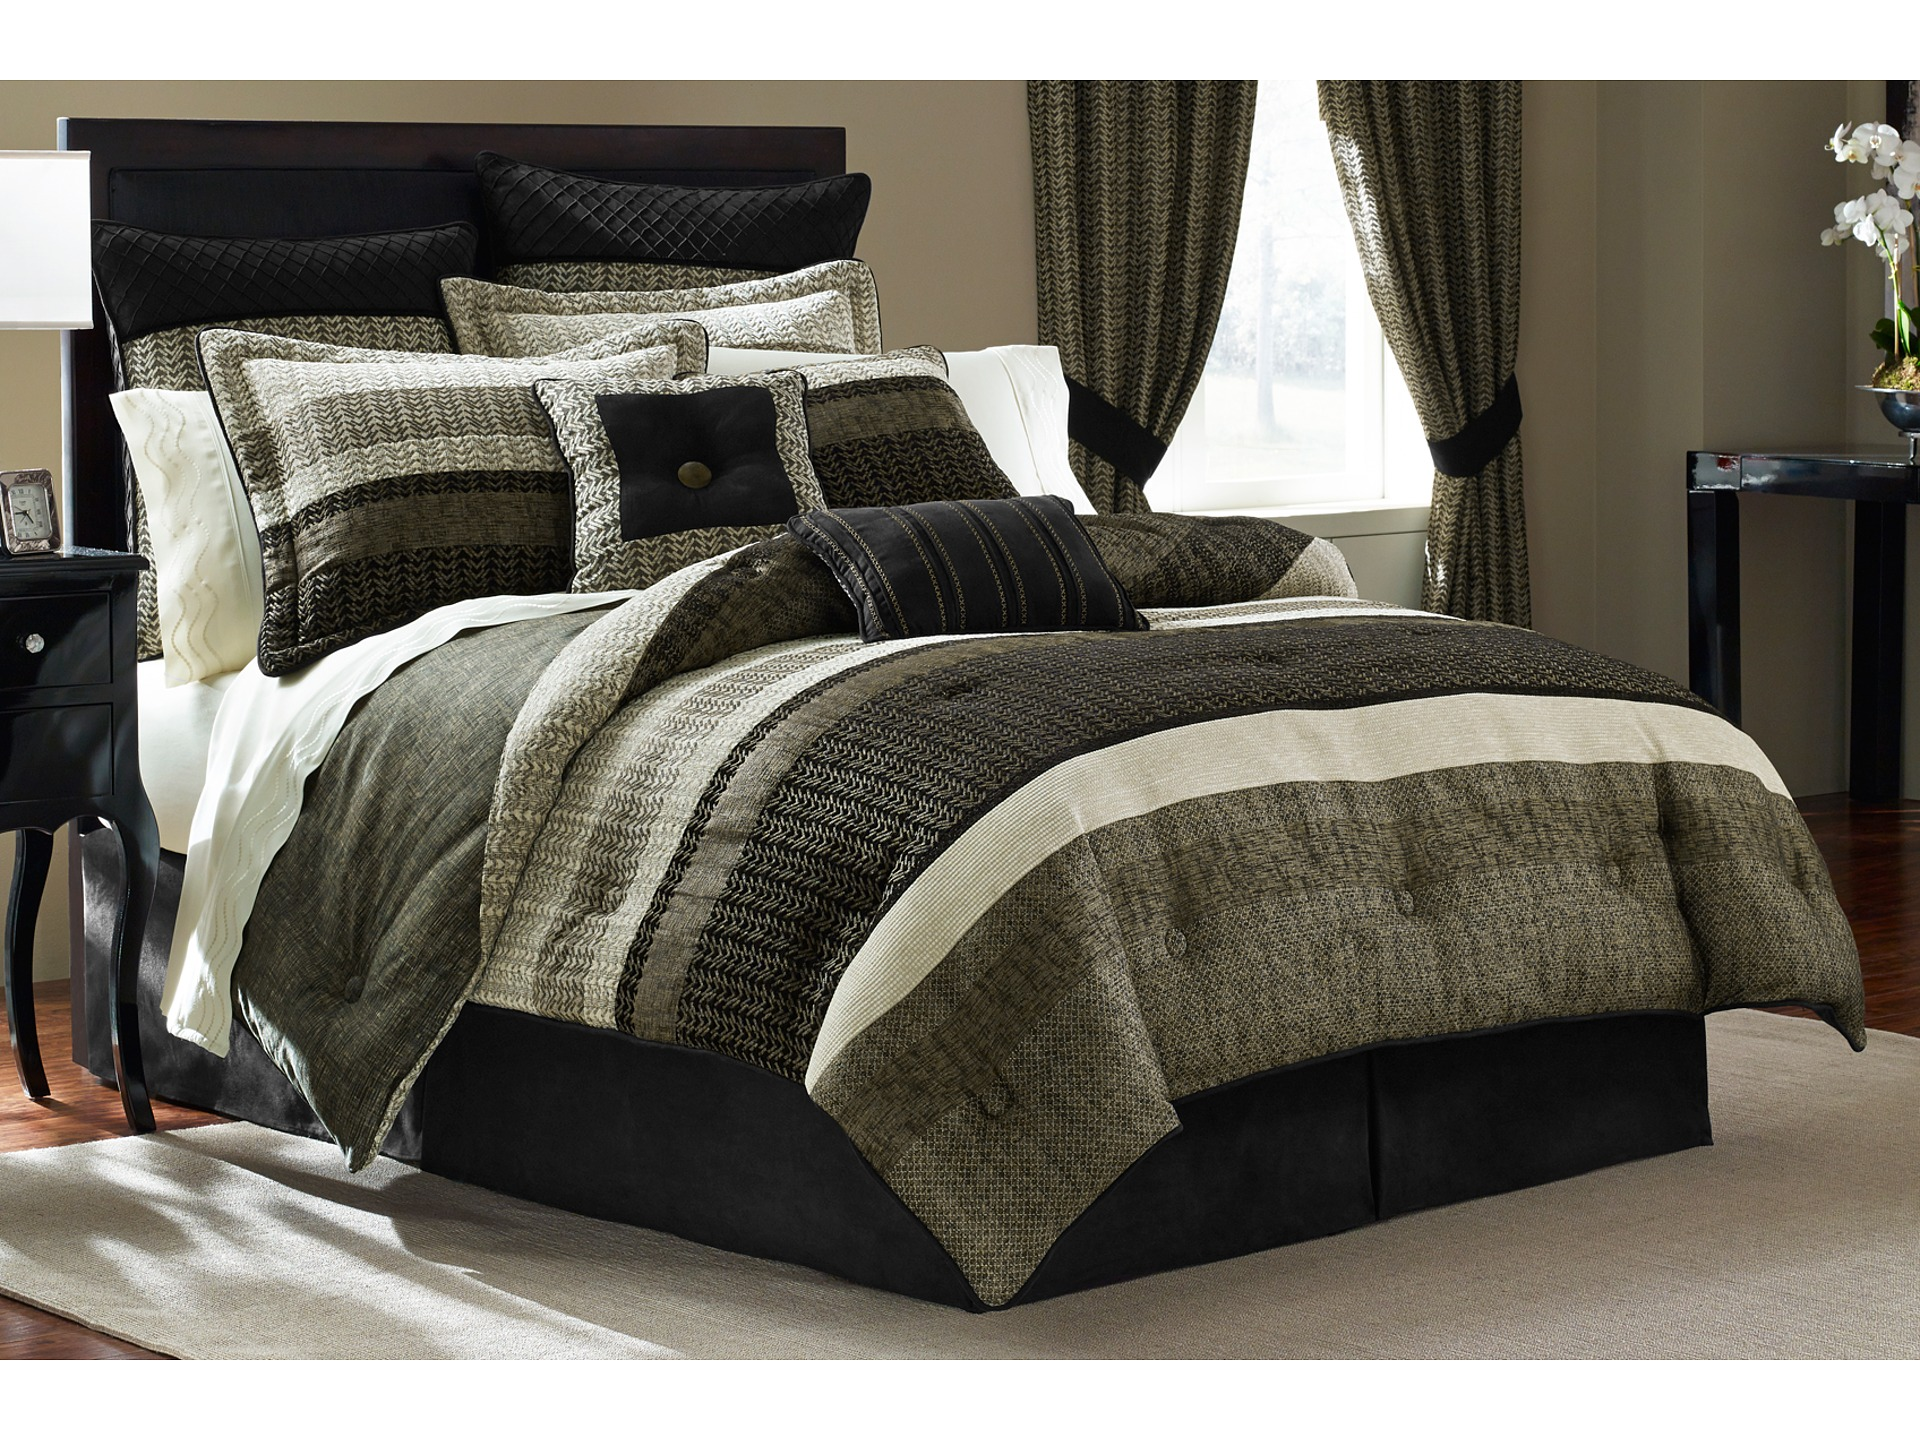 Croscill Portland Comforter Set Cal King Black Ivory